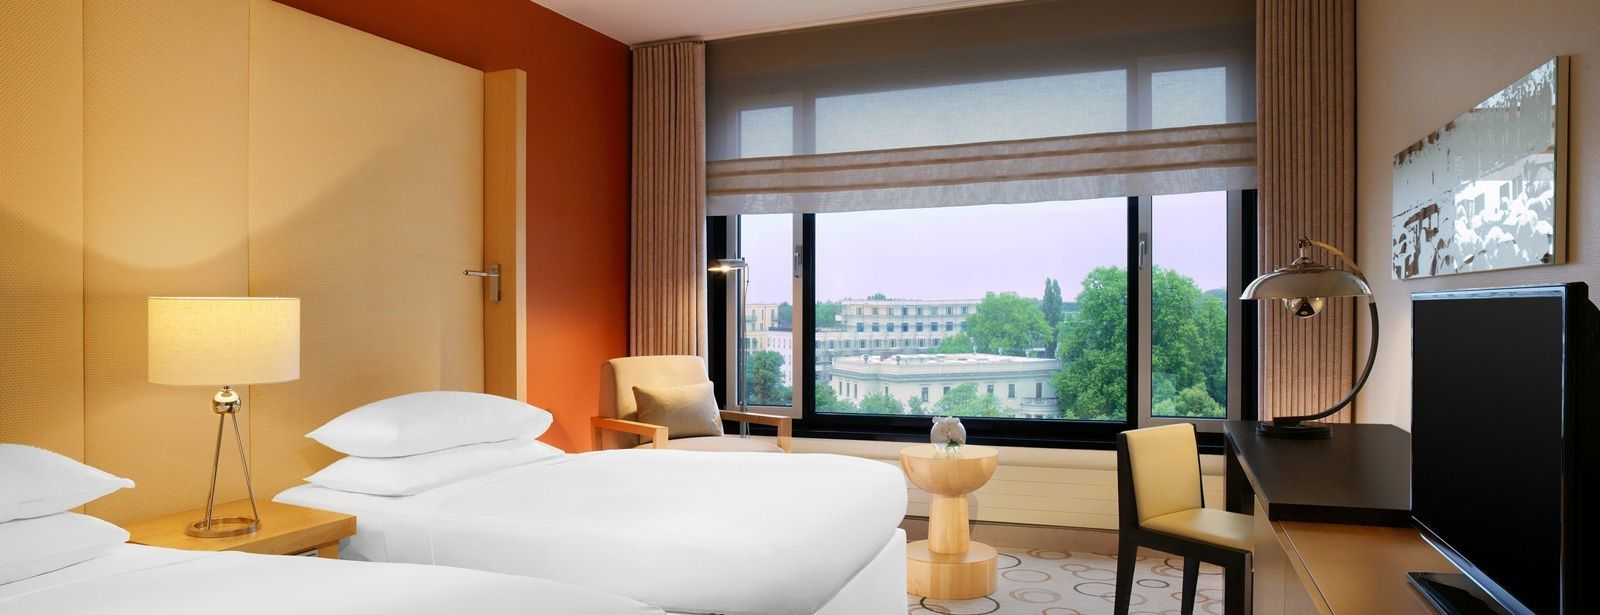 Twin Room - Classic Room at Sheraton Berlin Grand Hotel Esplanade